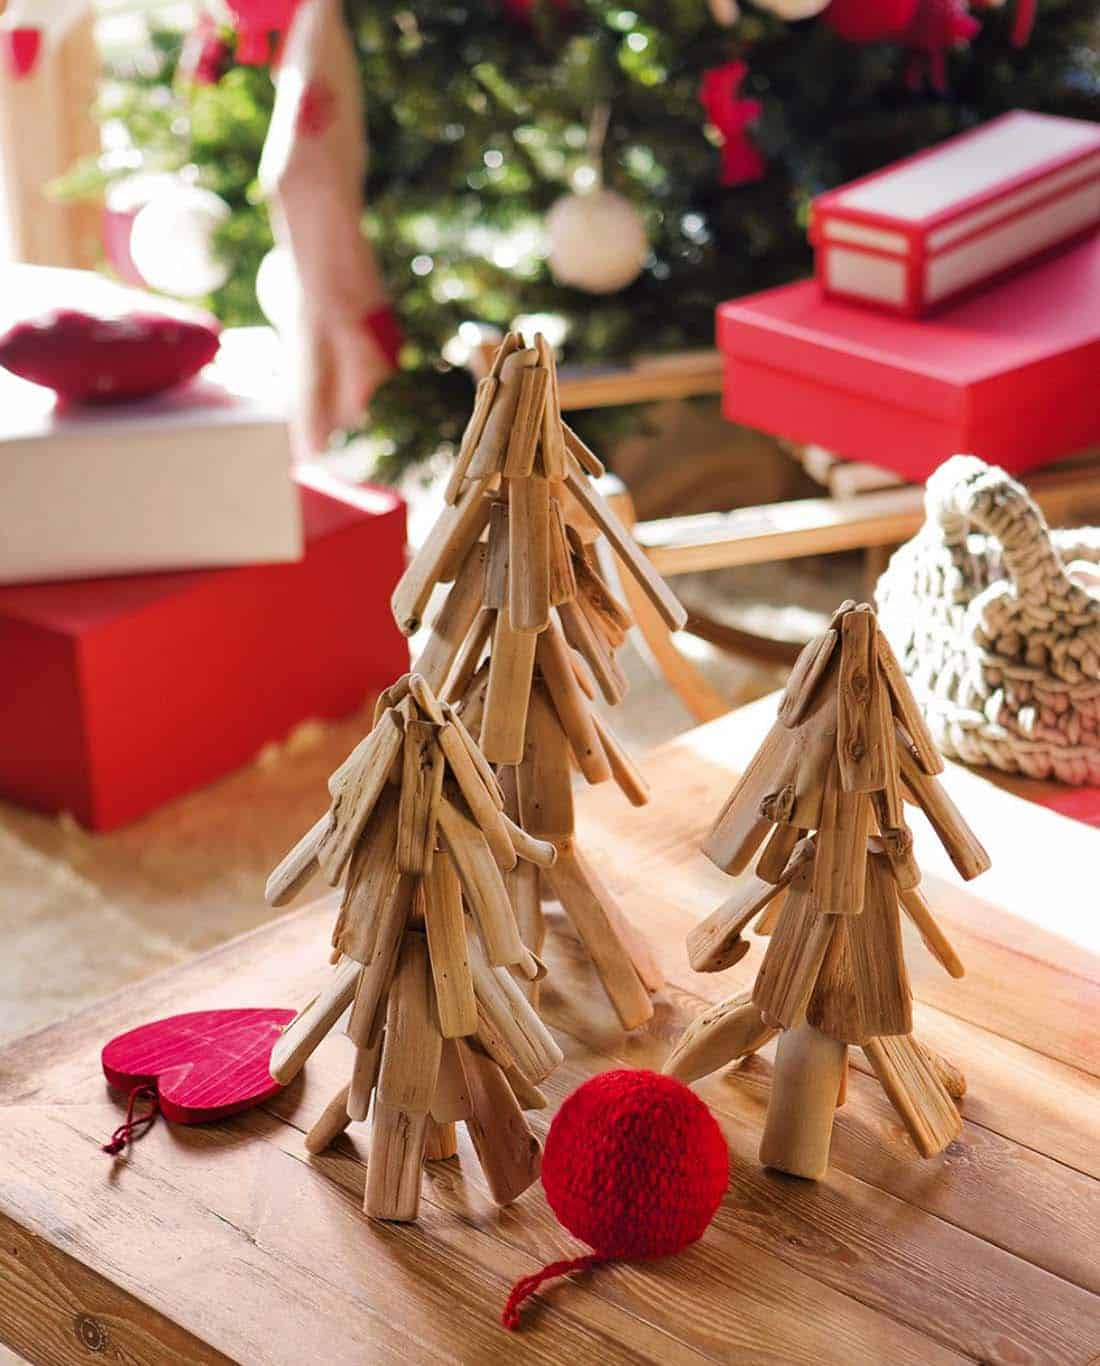 Nordic Style Christmas Decorated Home-10-1 Kindesign